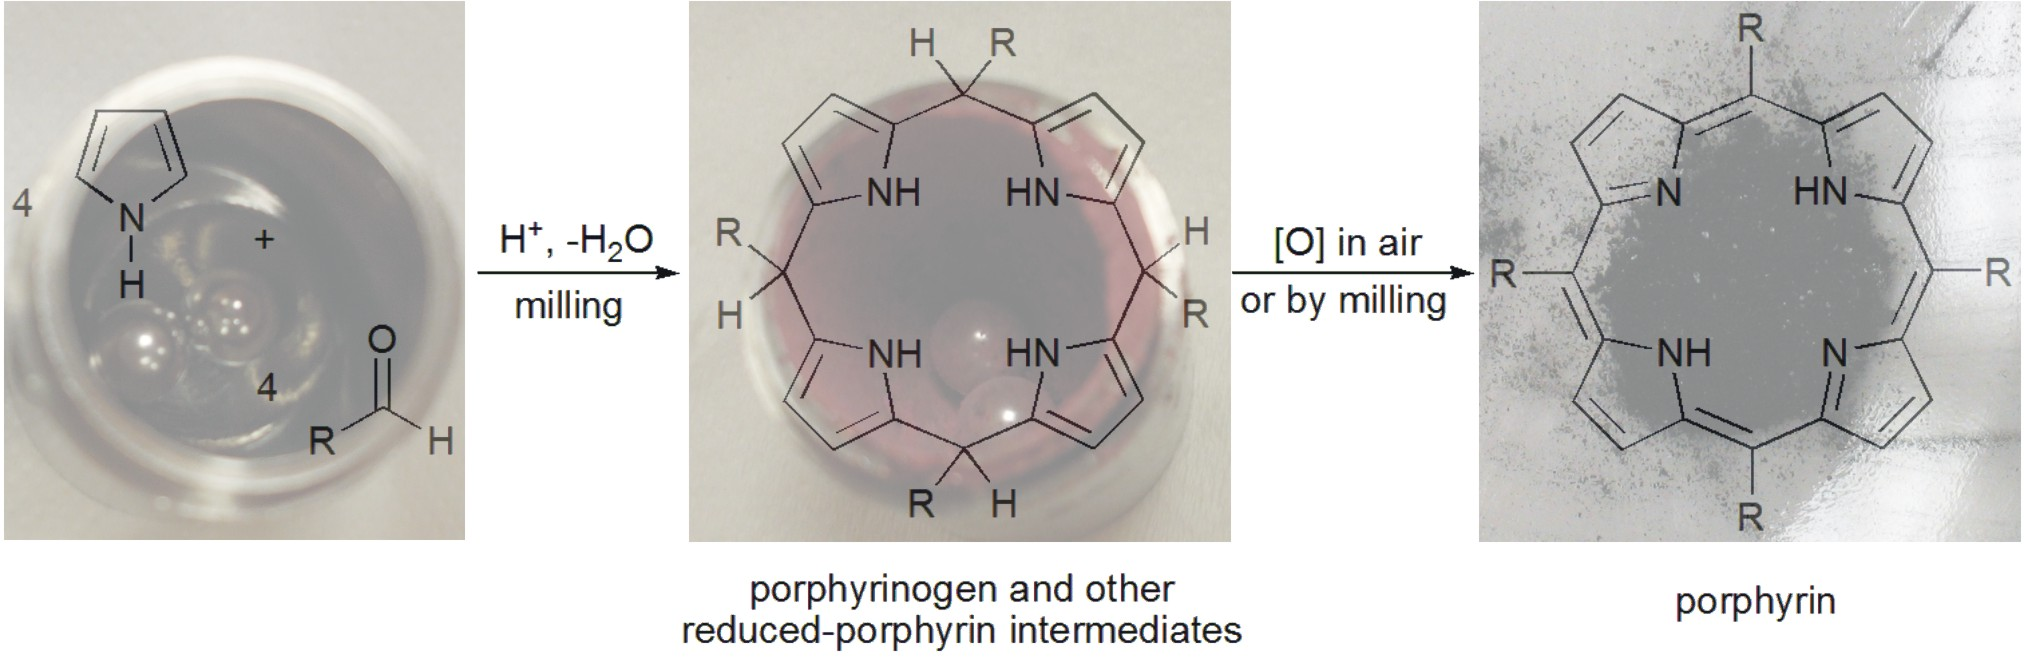 Solvent-free Synthesis of Porphyrins